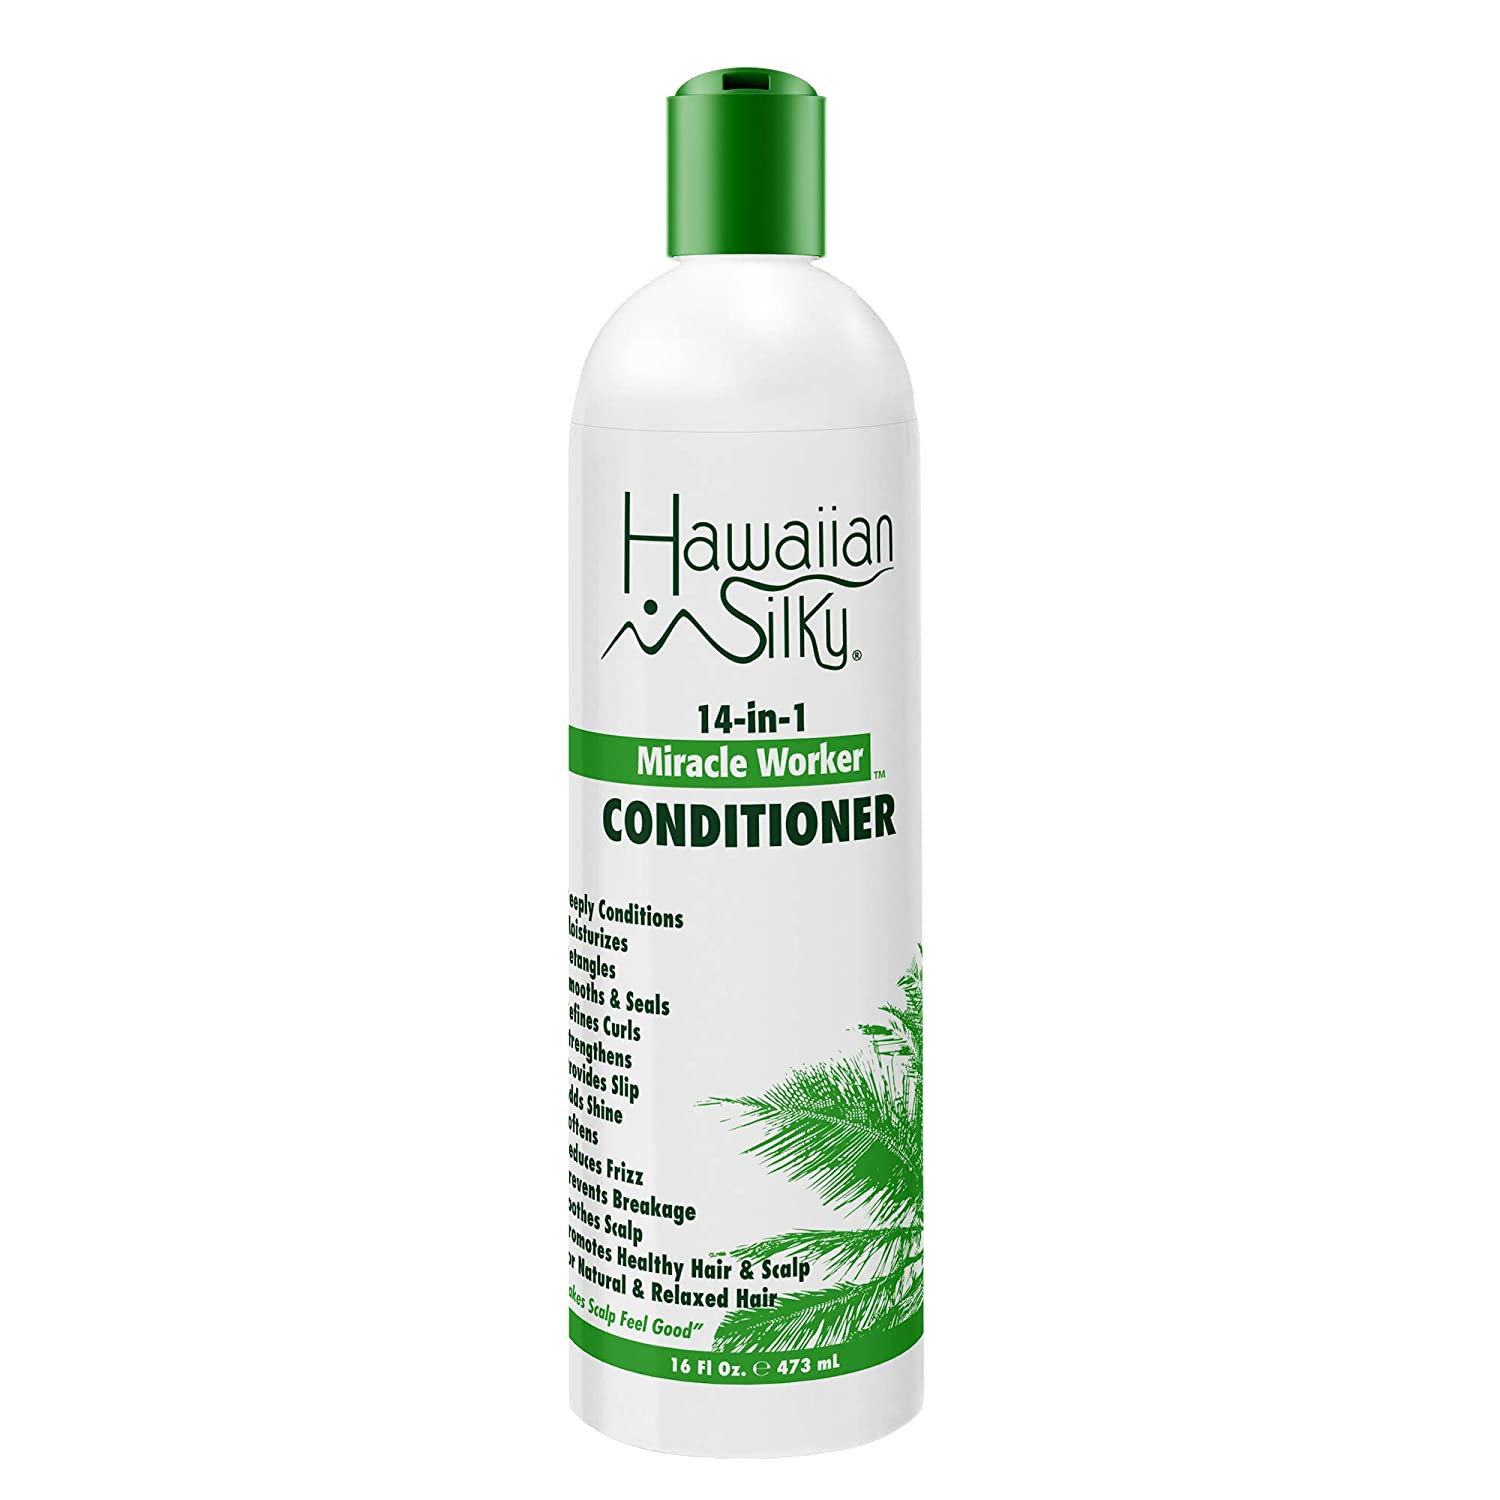 Hawaiian Silky 14-In-1 Miracle Worker Conditioner, 16 f oz - Daily Treatment for All Hair Types - Restore Chemically Damaged Hair